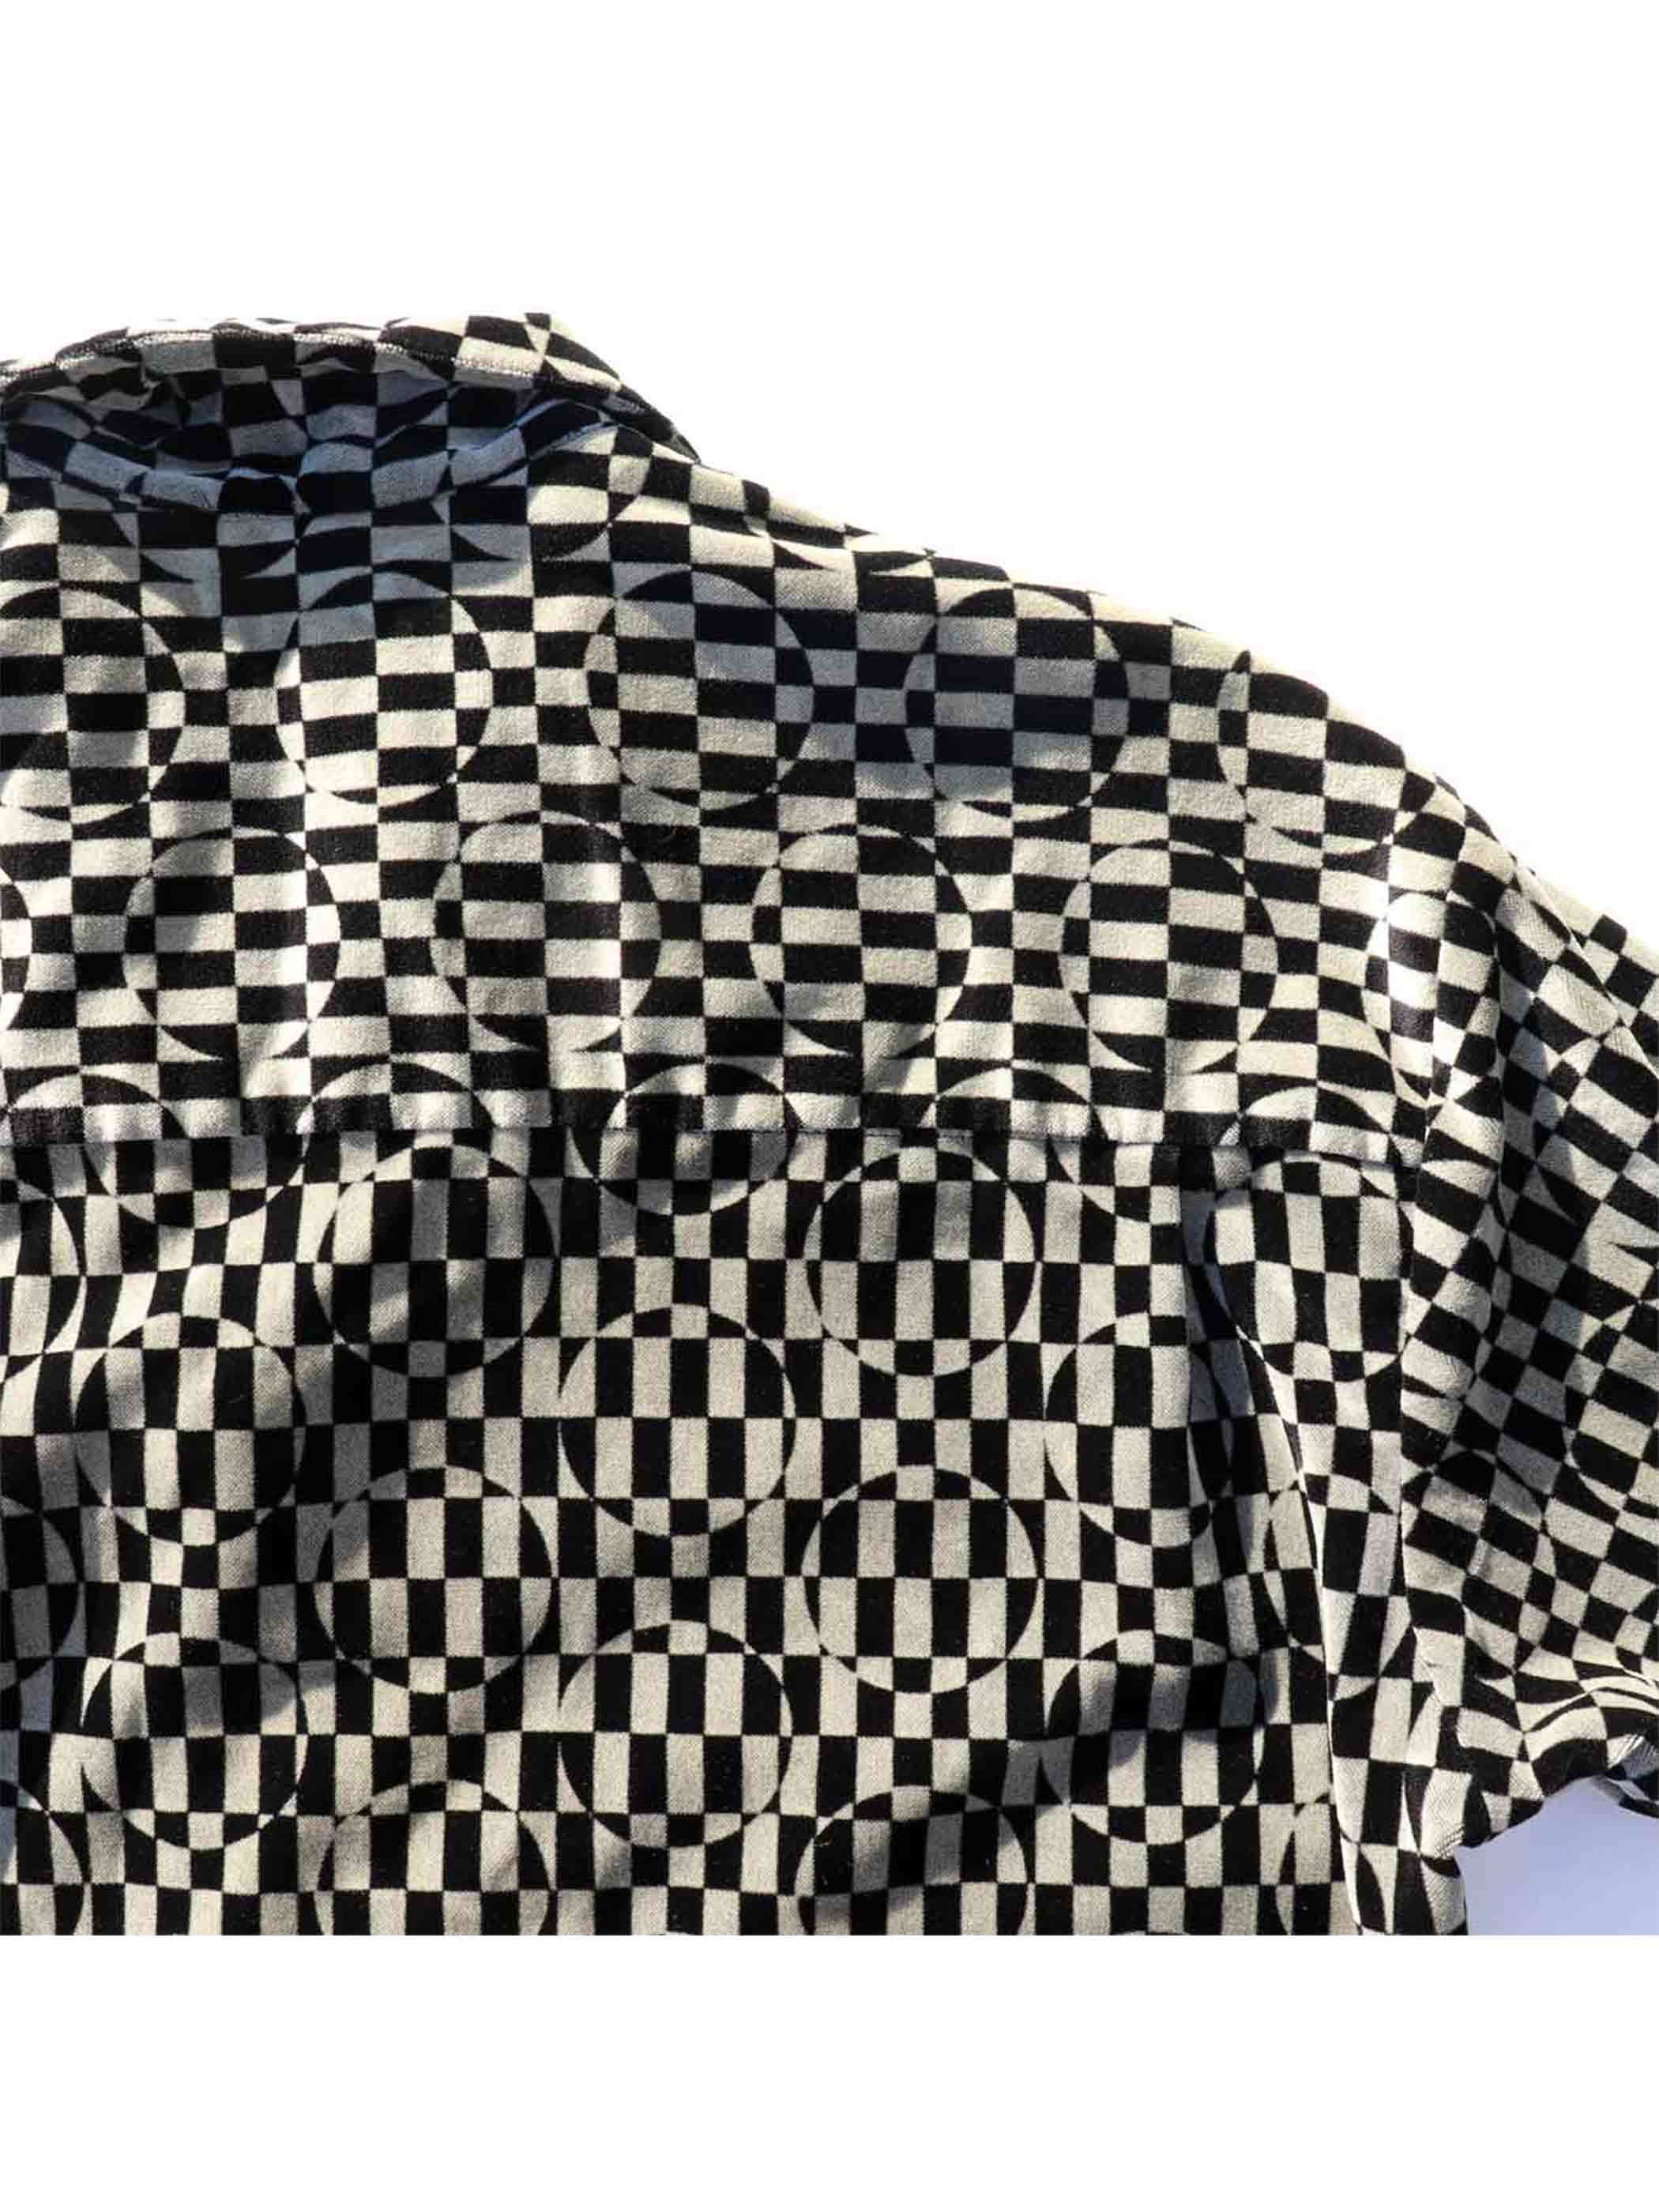 90's JAY Y. KO Optical Pattern Velvet Shirt [About XL]